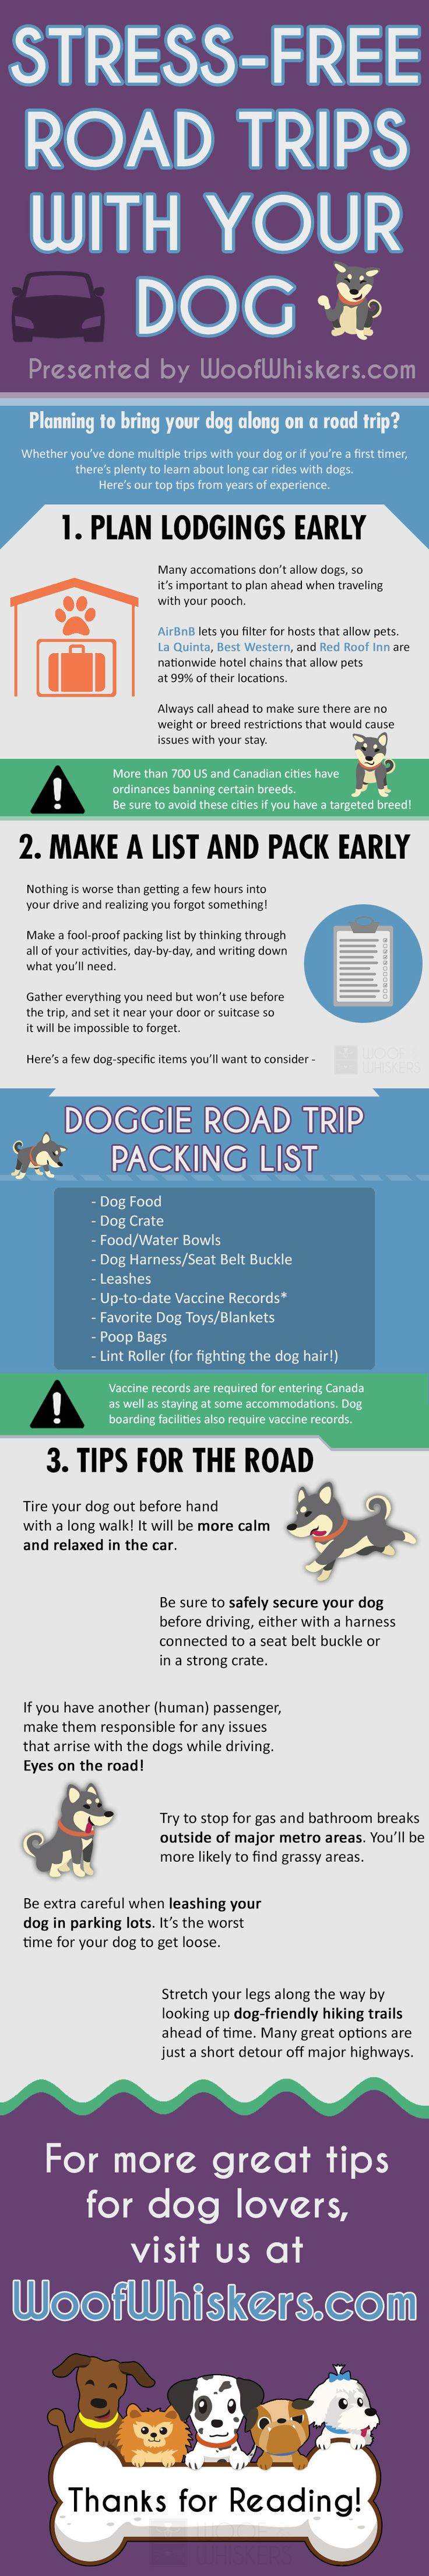 Awesome infographic guide to road trips with dogs! Perfect for dog owners going on a long car ride.